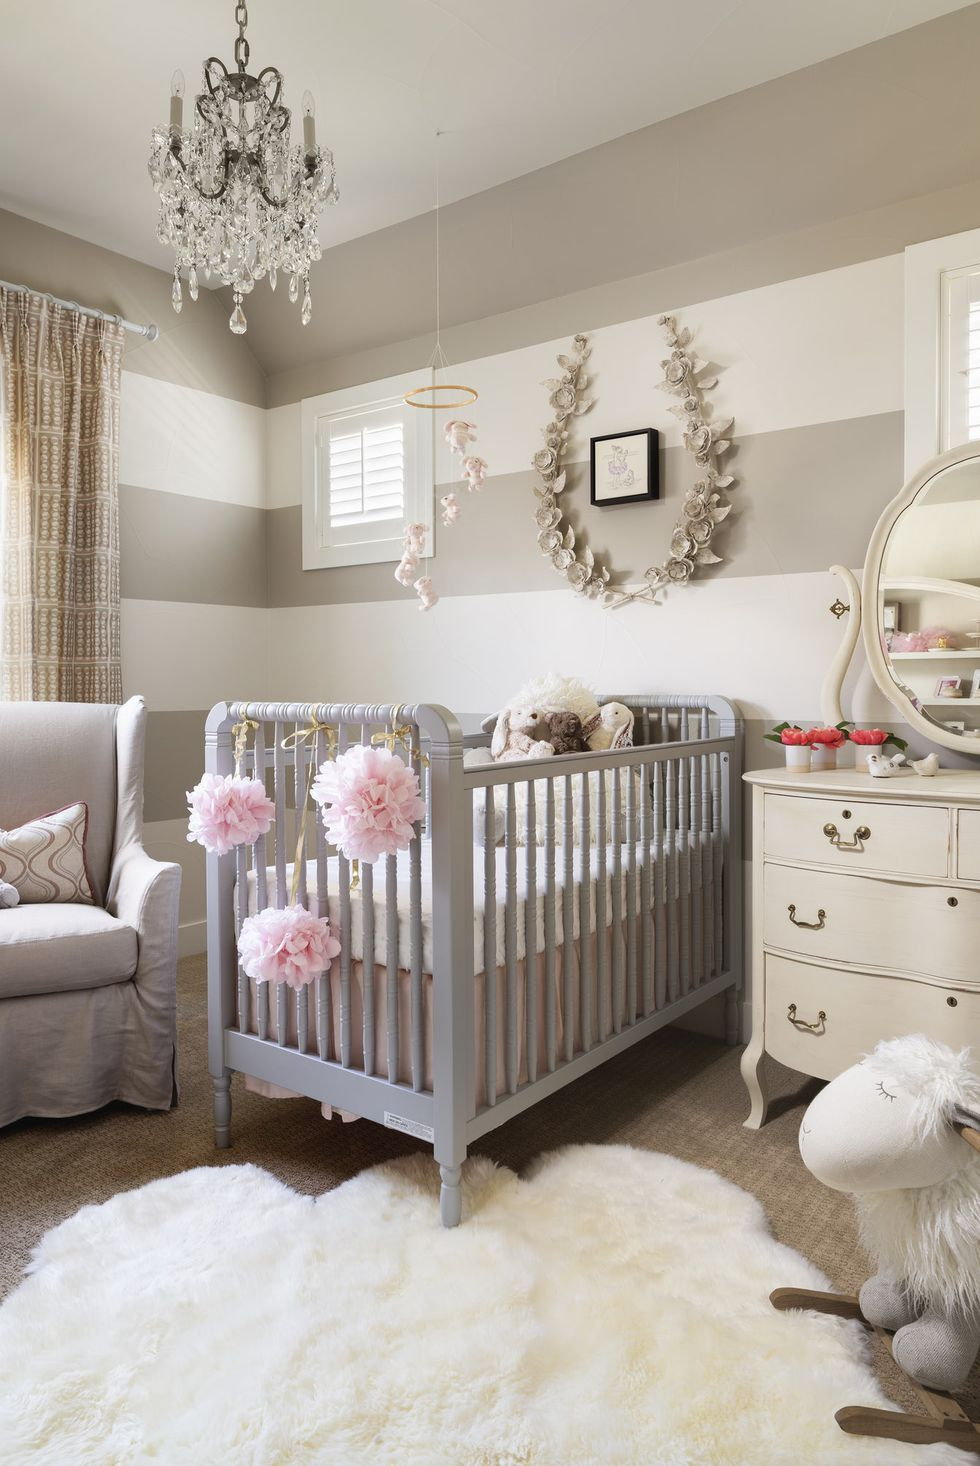 Stylish Baby Rooms Even Adults Would Adore Chic Baby Rooms Baby Room Design Striped Walls Nursery